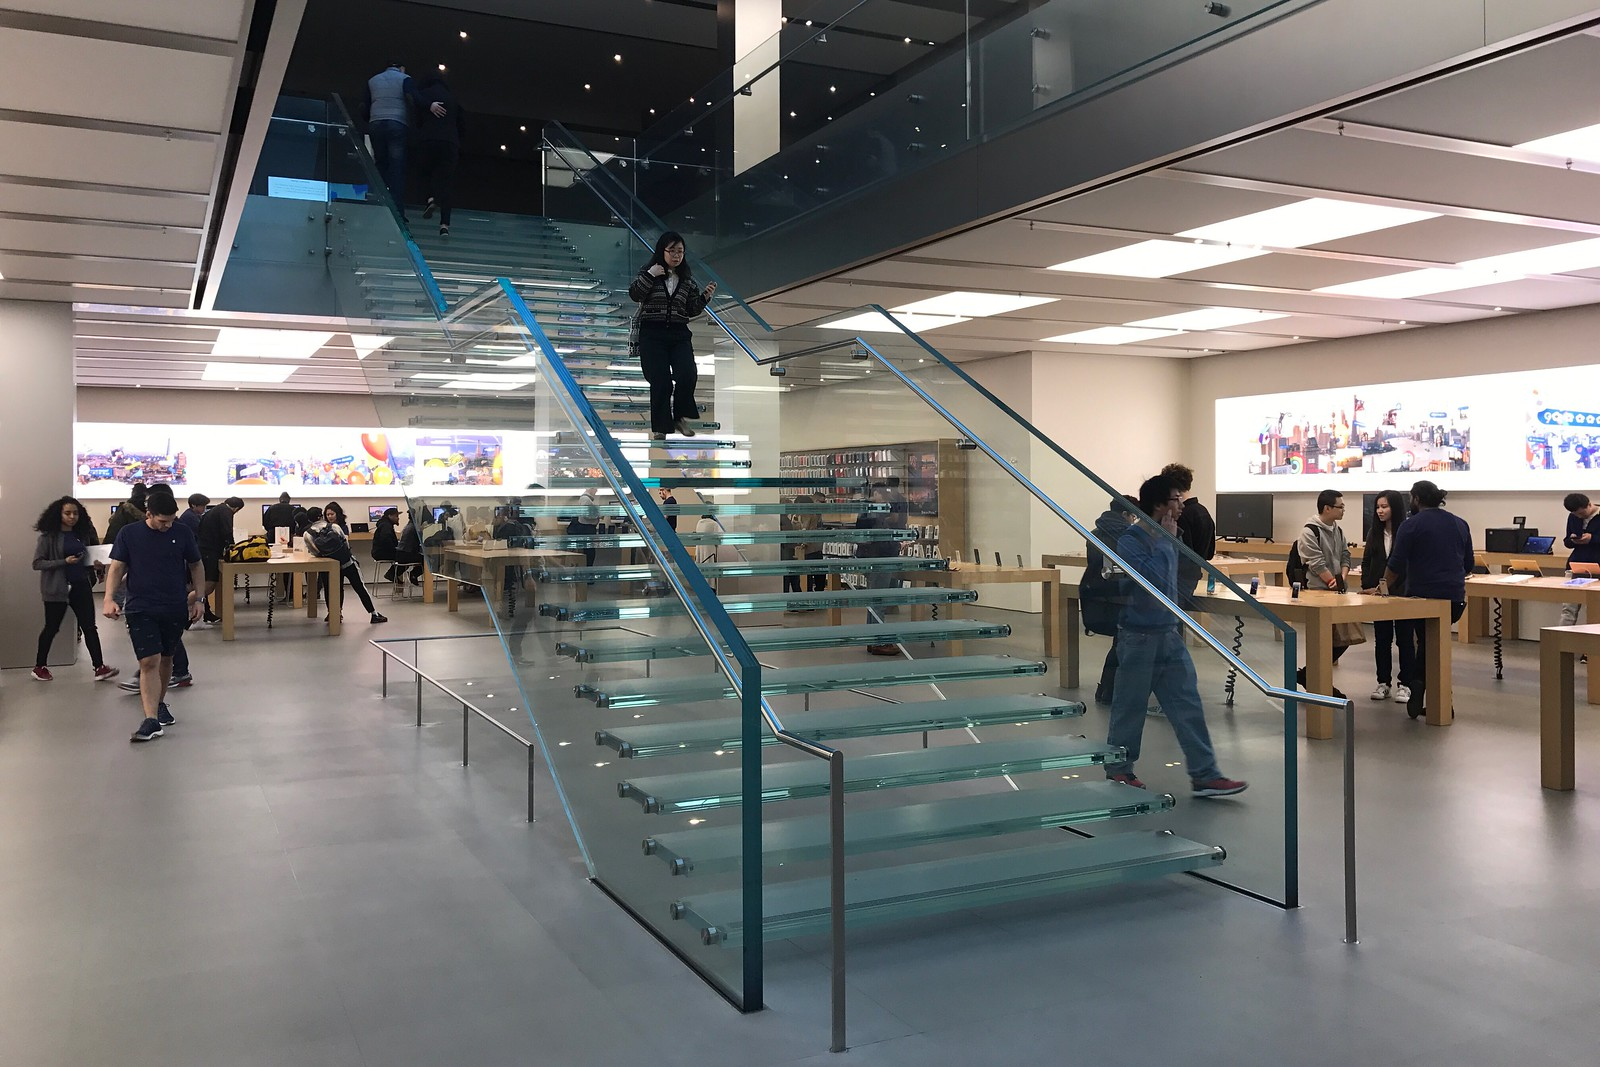 Apple SoHo